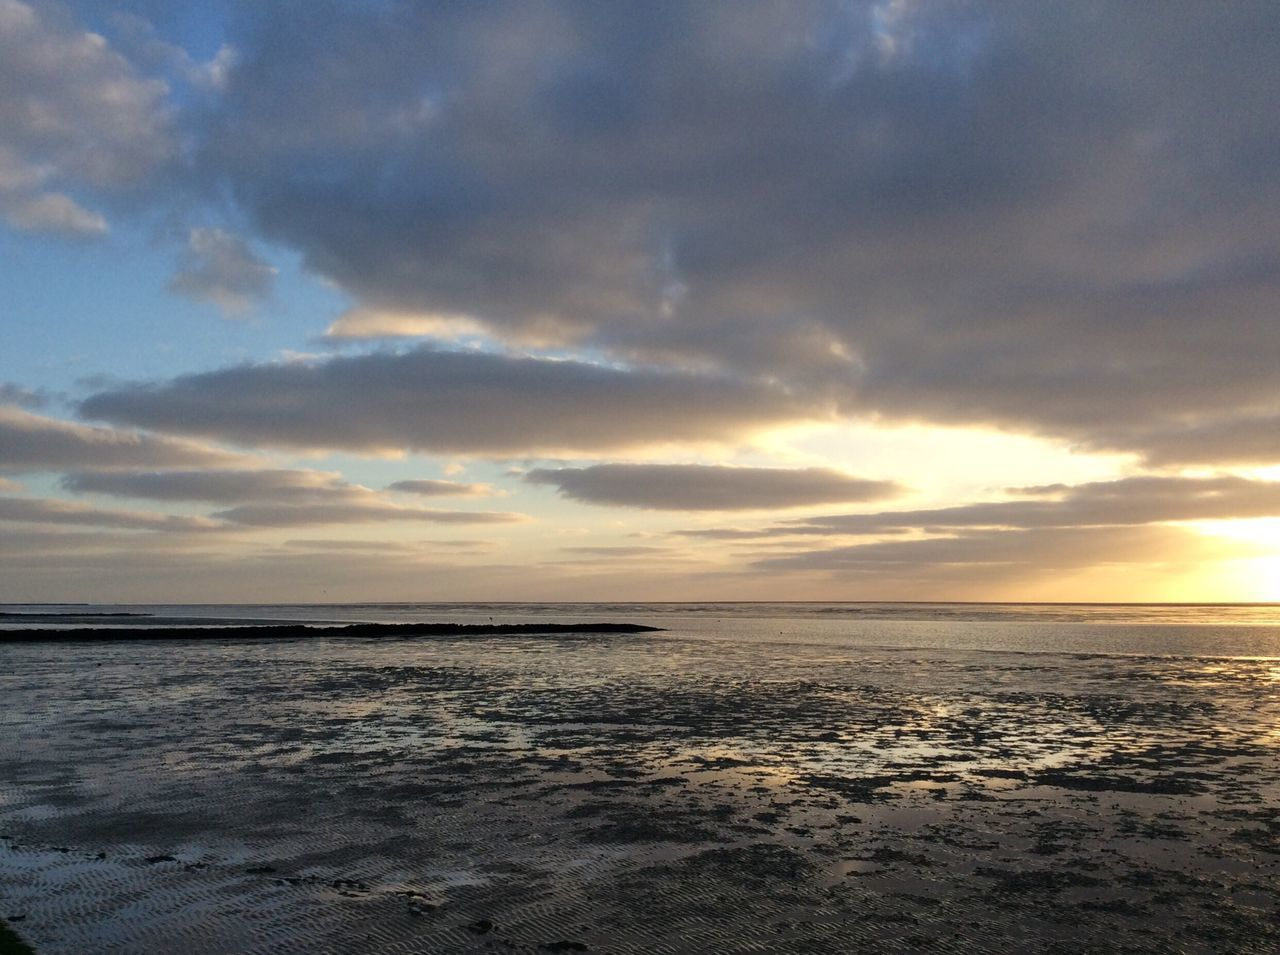 sea, beauty in nature, sunset, scenics, tranquility, water, tranquil scene, nature, cloud - sky, sky, horizon over water, no people, idyllic, beach, outdoors, day